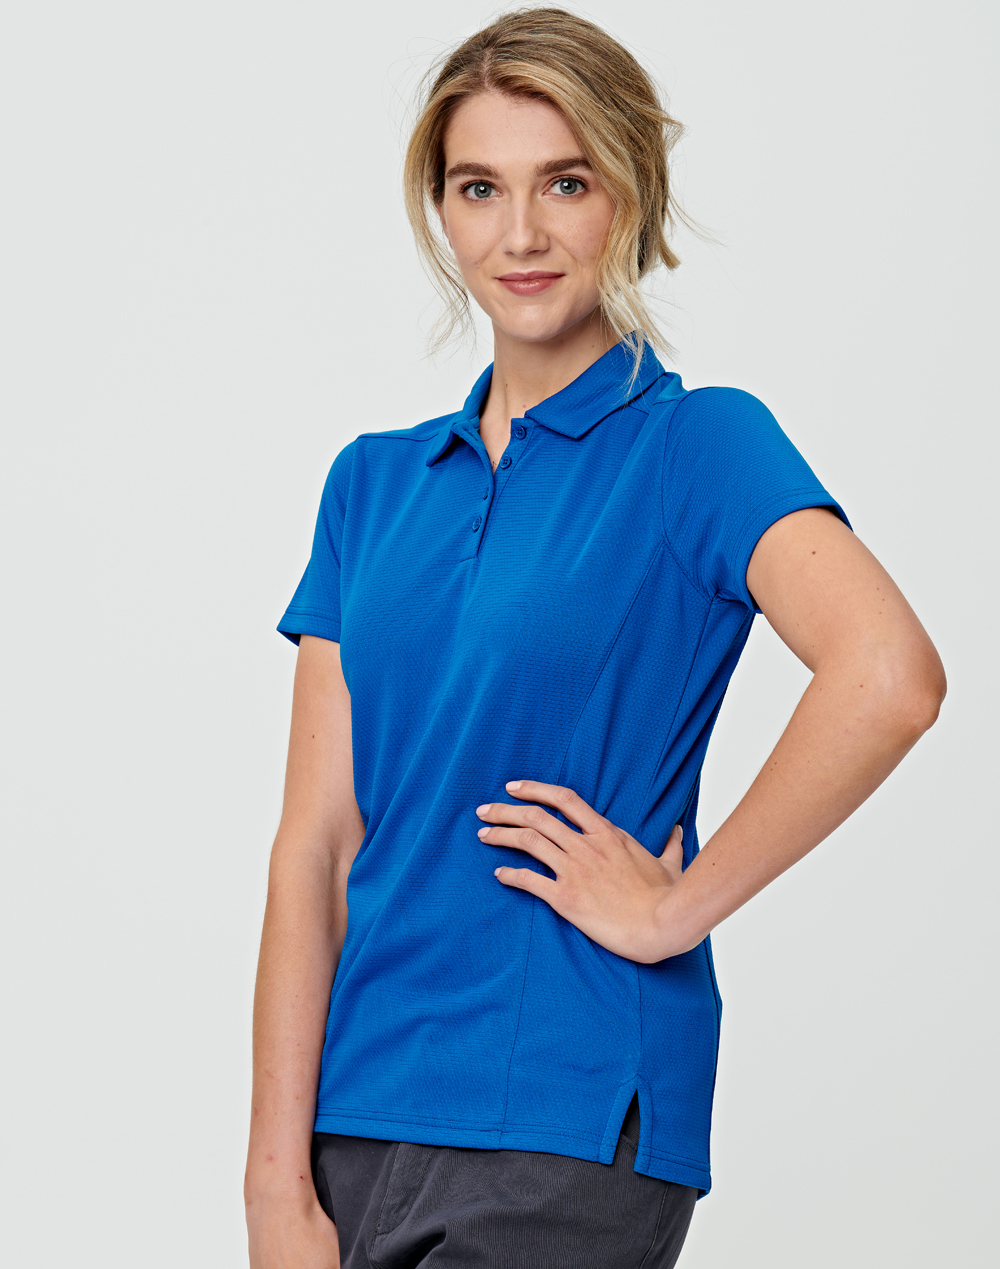 PS88 BAMBOO CHARCOAL CORPORATE SHORT SLEEVE POLO Ladies